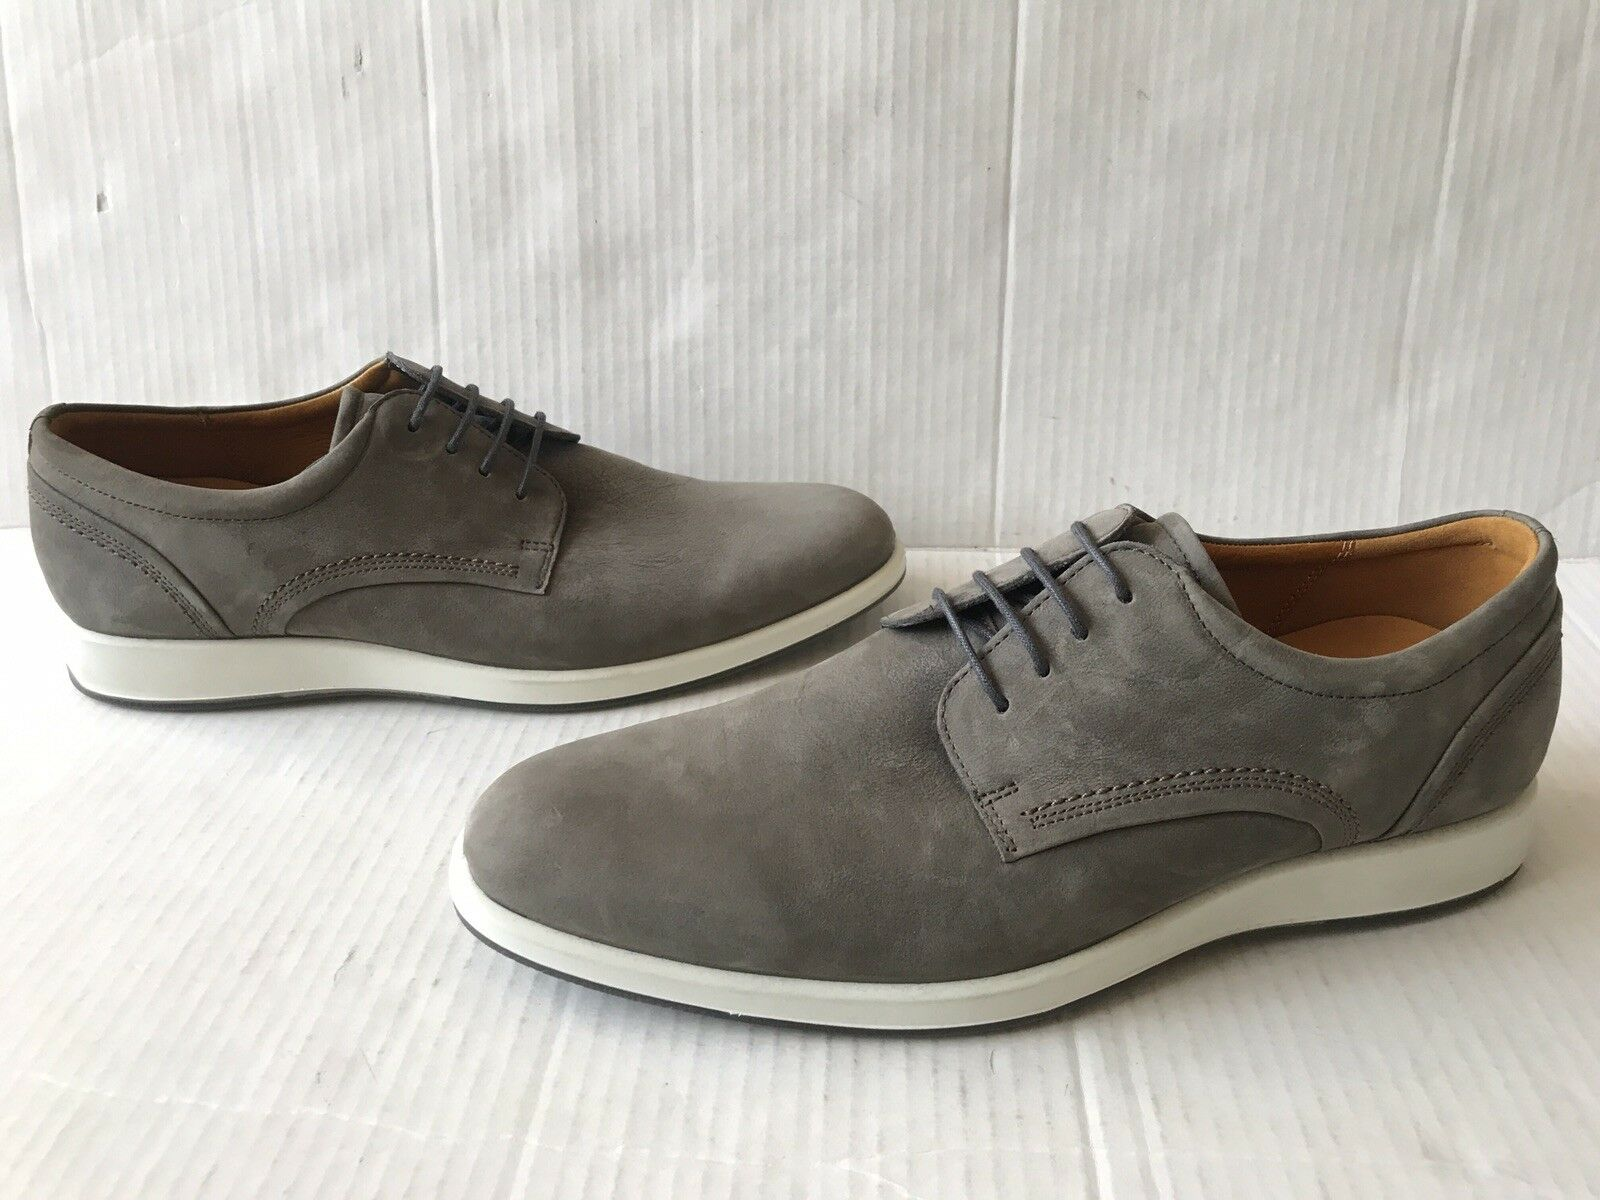 ECCO 'Jared' Leather Oxford. Size 9-9.5